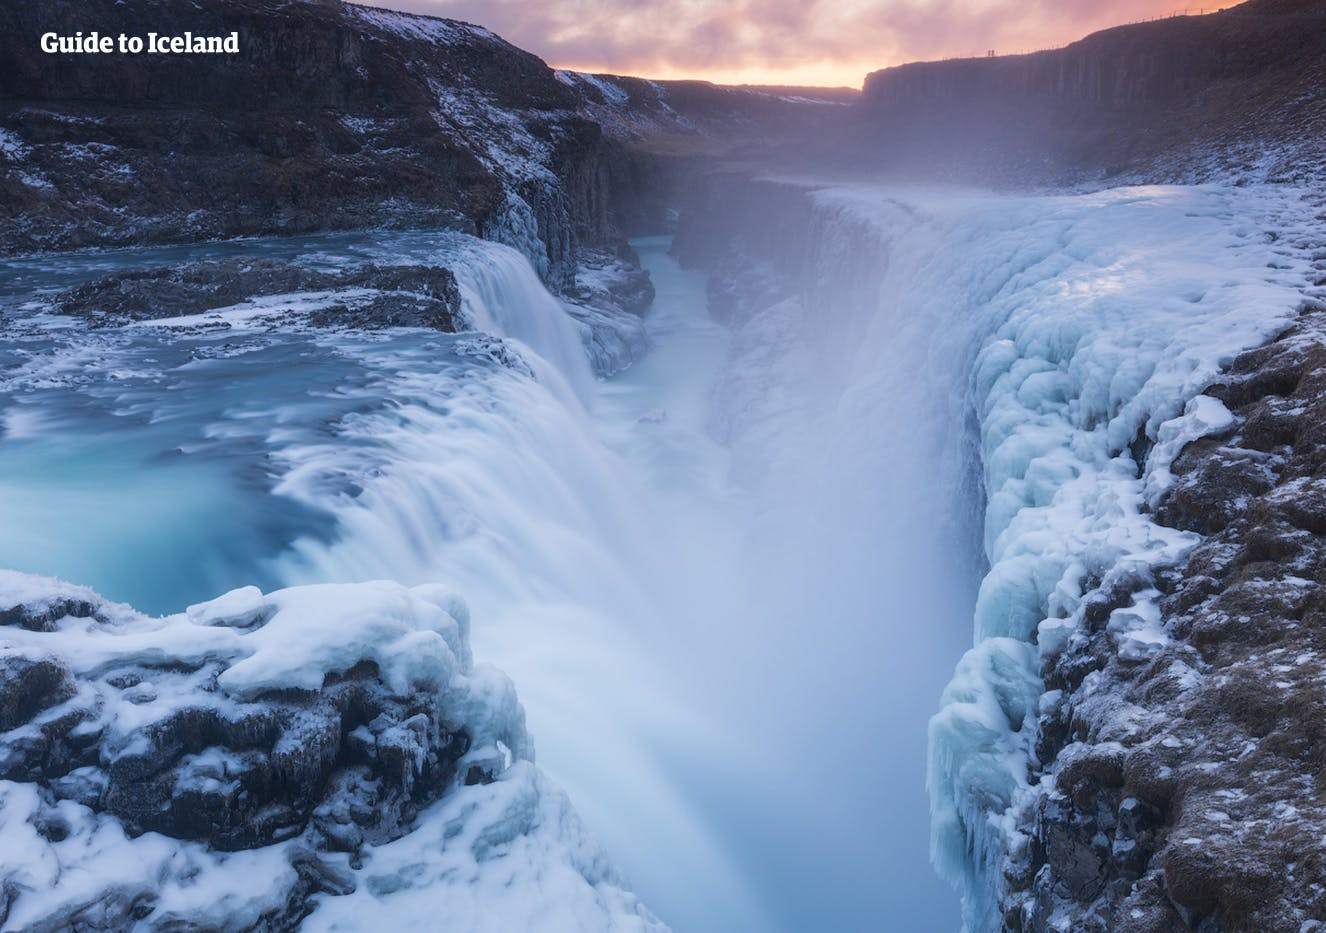 9 Day Self-Drive Winter Tour | Snaefellsnes Peninsula, South Coast, and Ice Cave